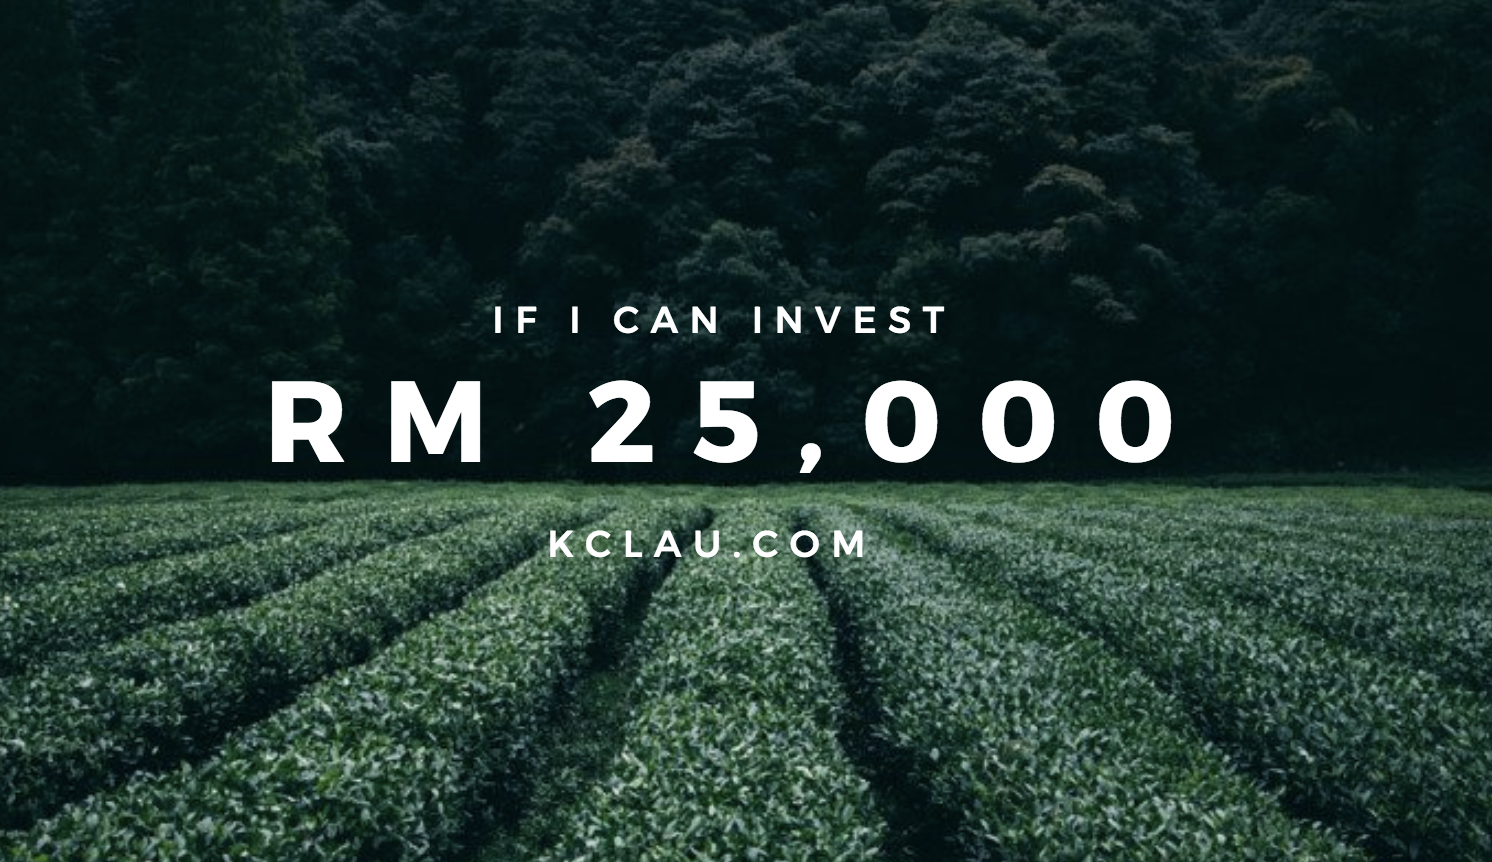 If I have RM 25,000 to Invest …